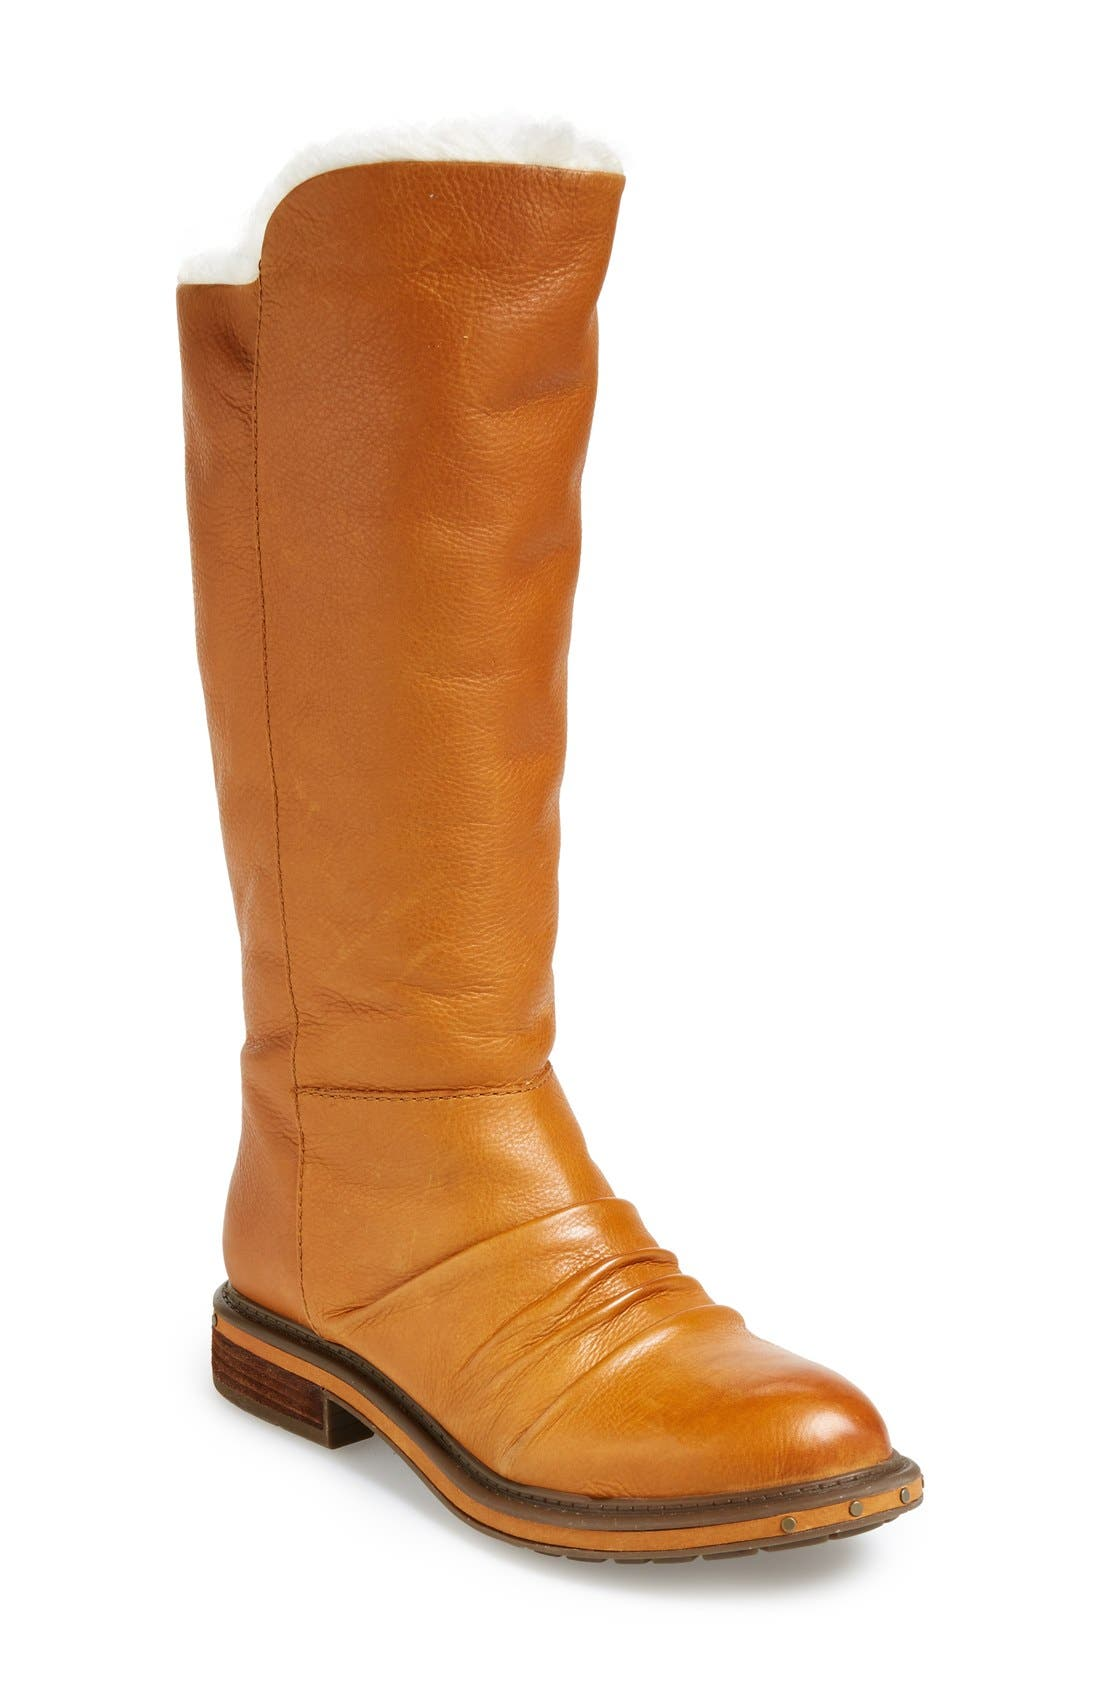 Main Image - Naya 'Raptor' Leather Tall Boot (Women) (Wide Calf)